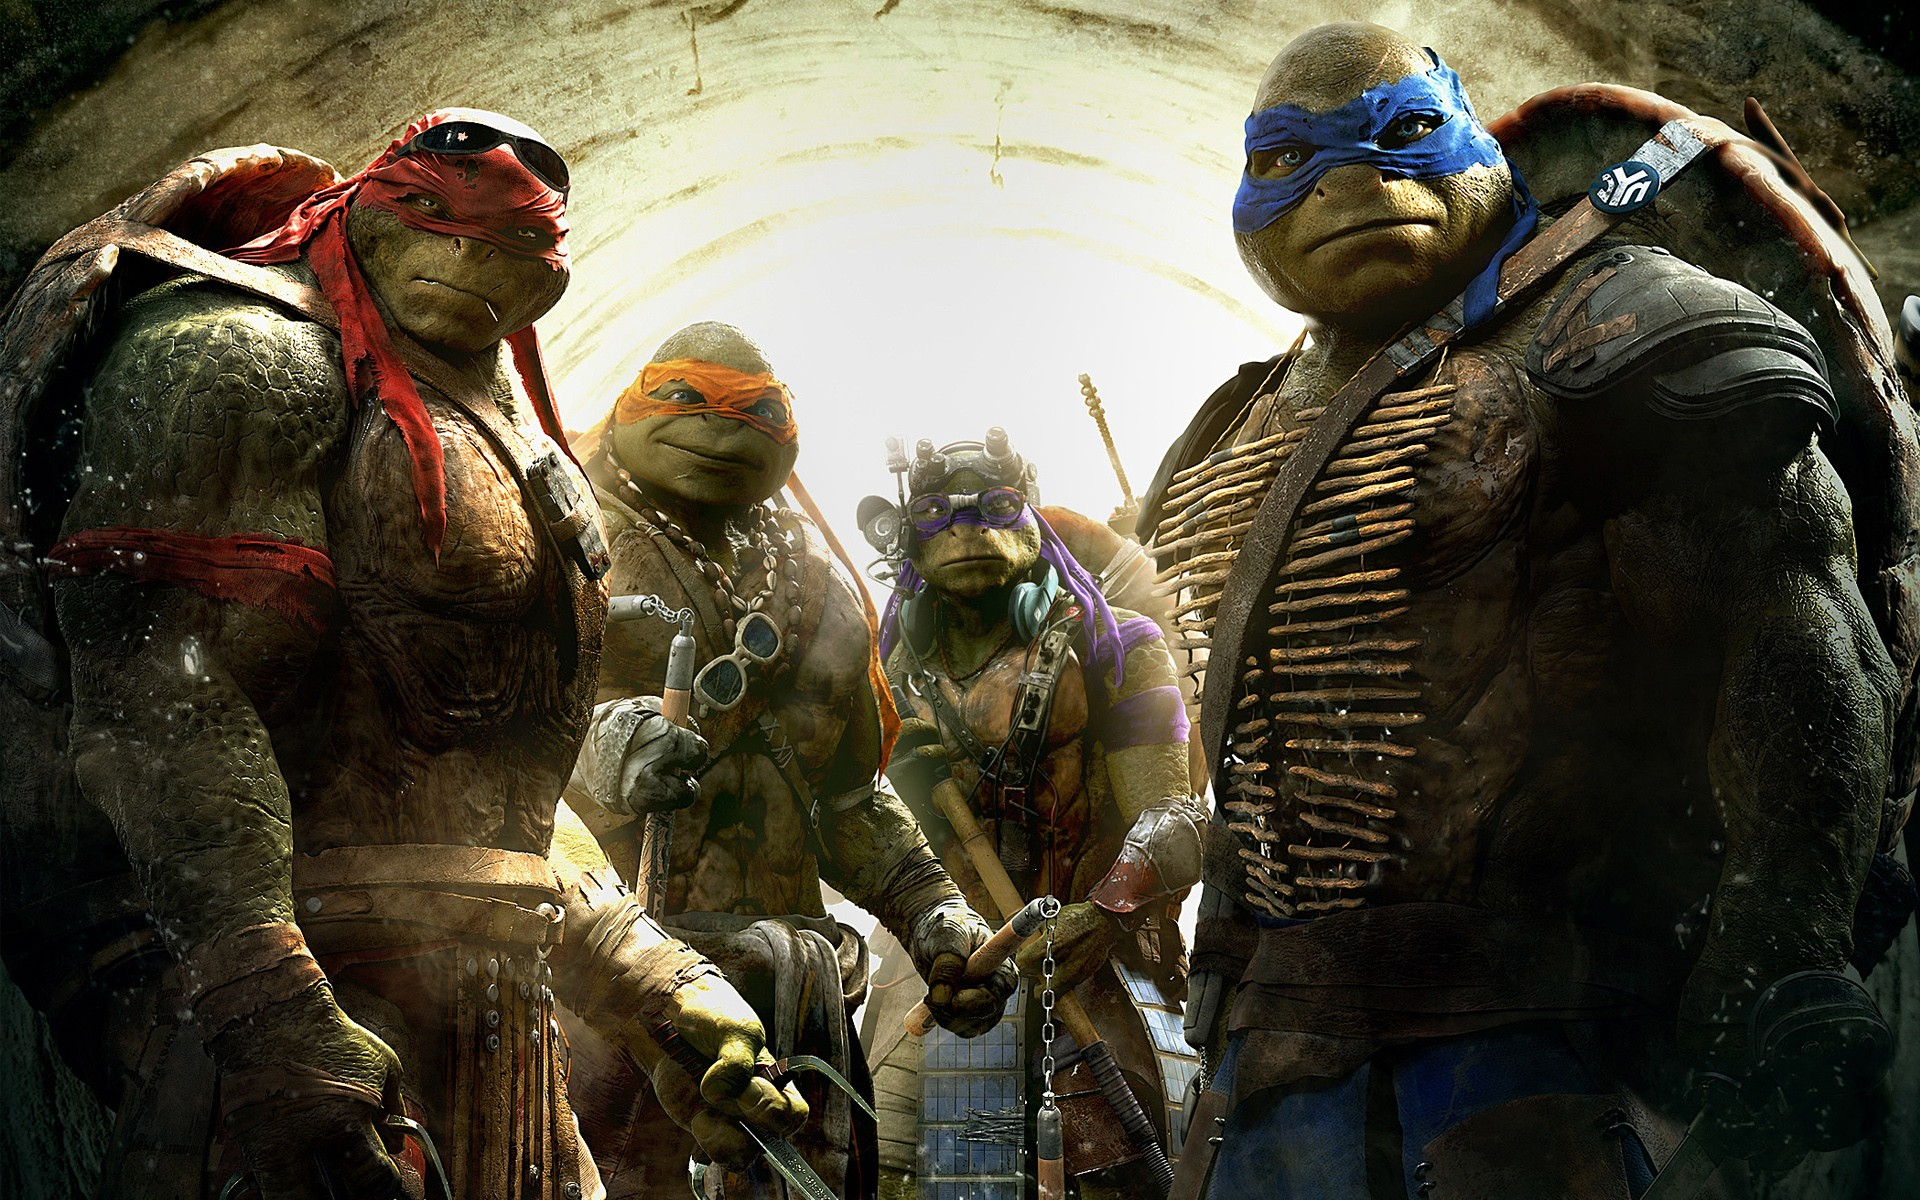 1440x900 Teenage Mutant Ninja Turtles 1440x900 Resolution Hd